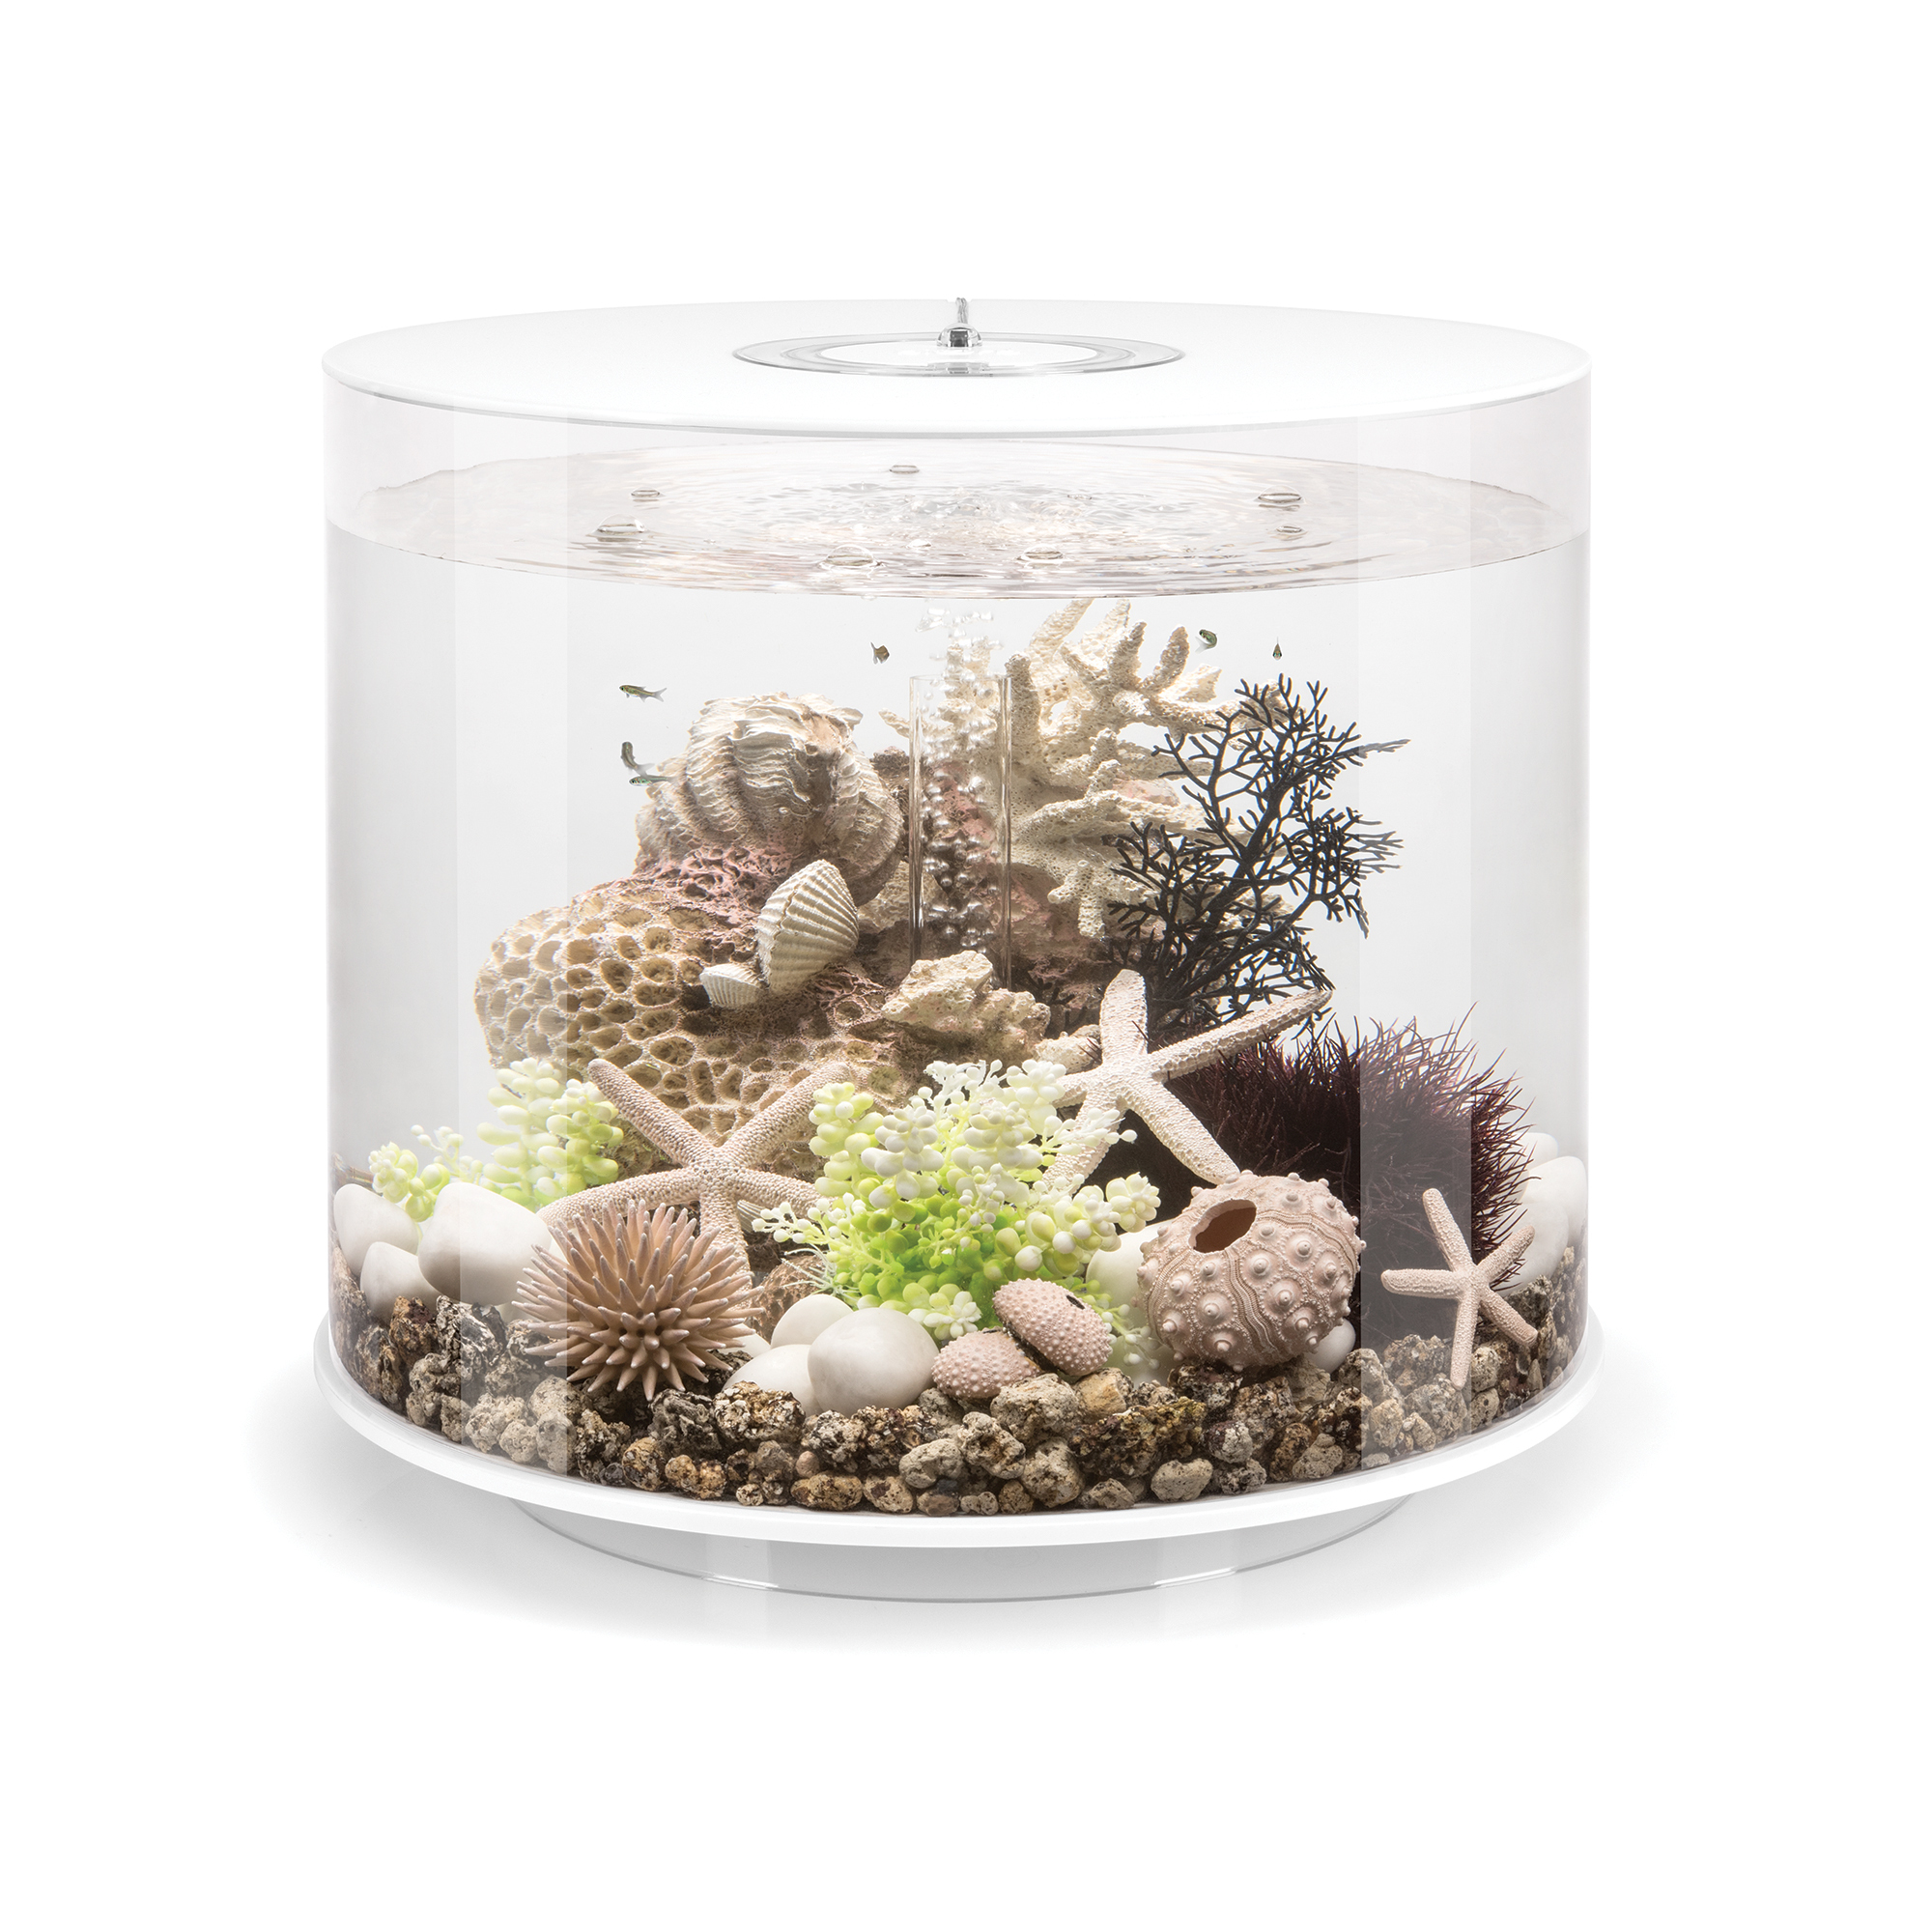 The new OASE biOrb® TUBE aquariums feature a cylindrical-profile with a unique 360° transparent view and an unprecedented array of multi-color LED lighting options with easy remote control customization. (Photo: Business Wire)